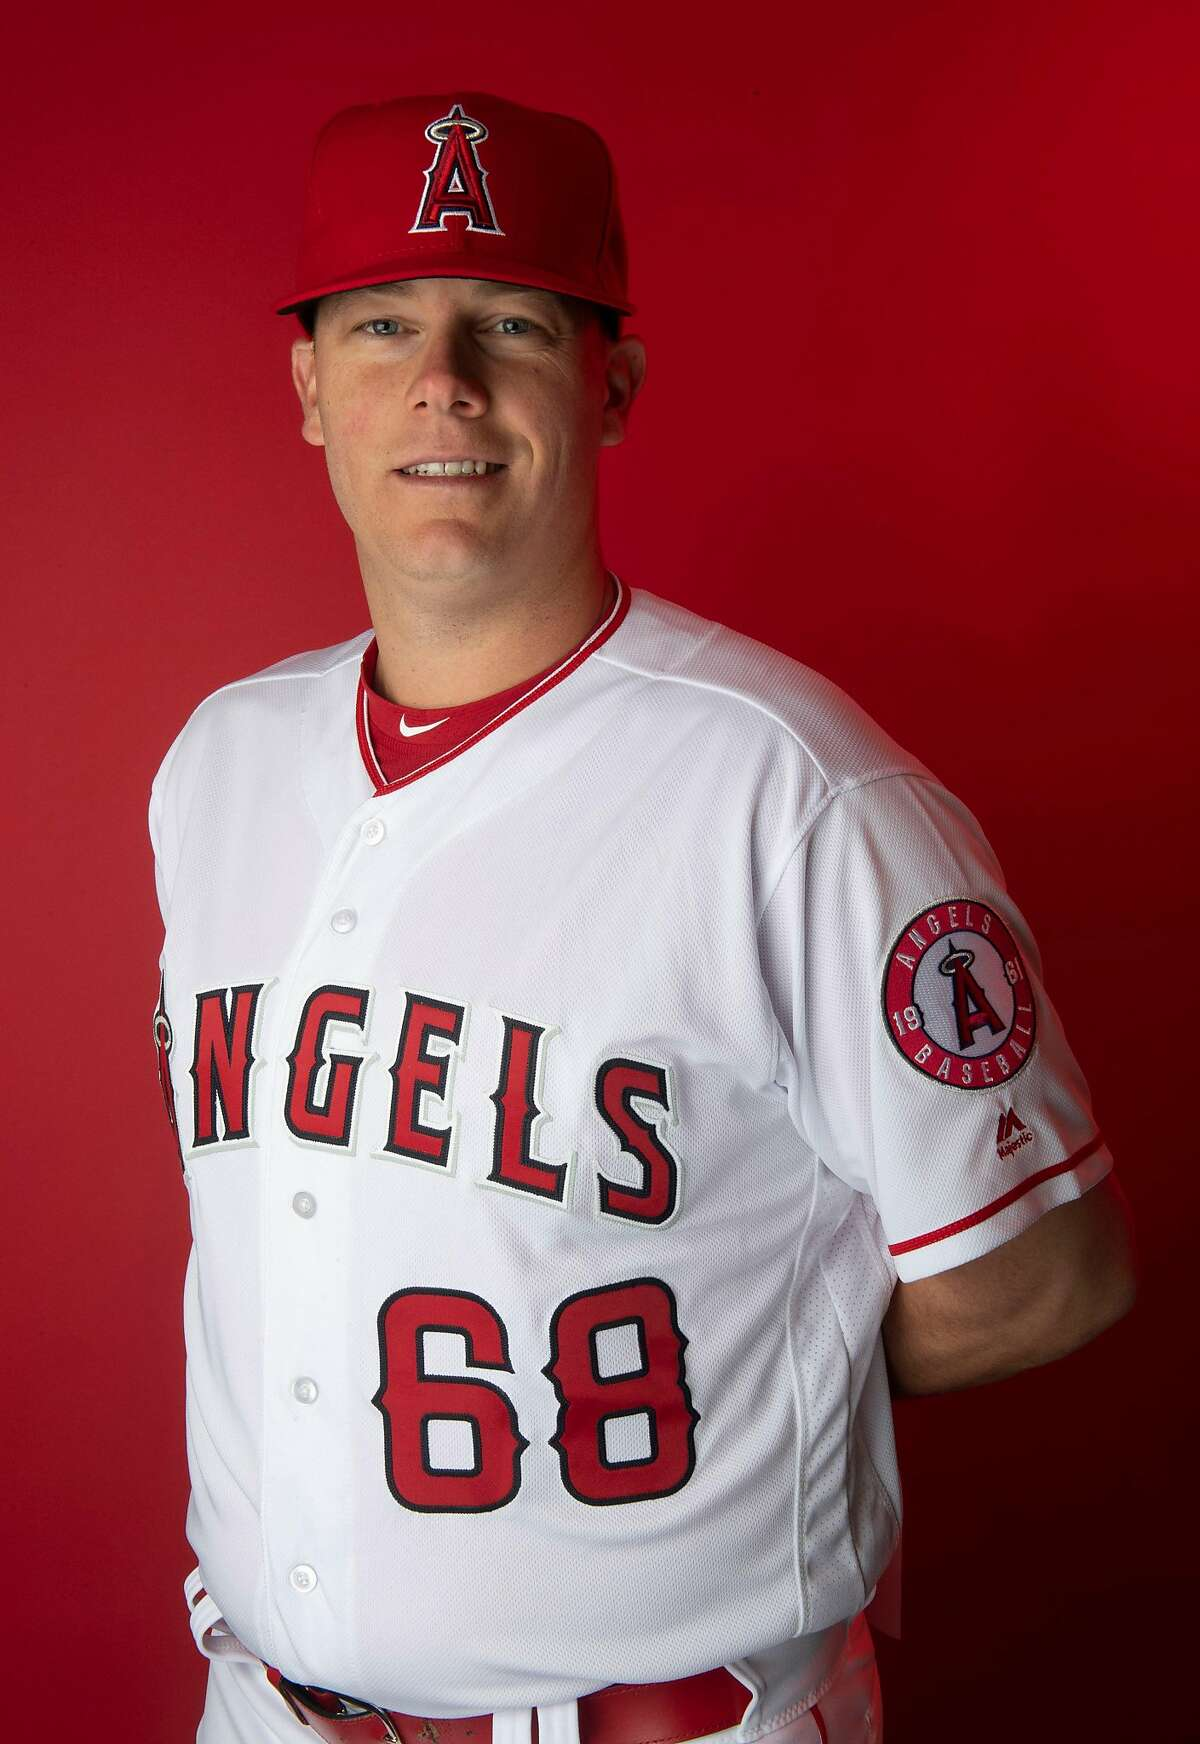 LOS ANGELES, CA - February 19: Los Angeles Angeles coach Andrew Bailey during photo day at Tempe Diablo Stadium on Tuesday, February 19, 2019 in Tempe, Arizona. (Photo by Keith Birmingham/MediaNews Group/Pasadena Star-News via Getty Images)